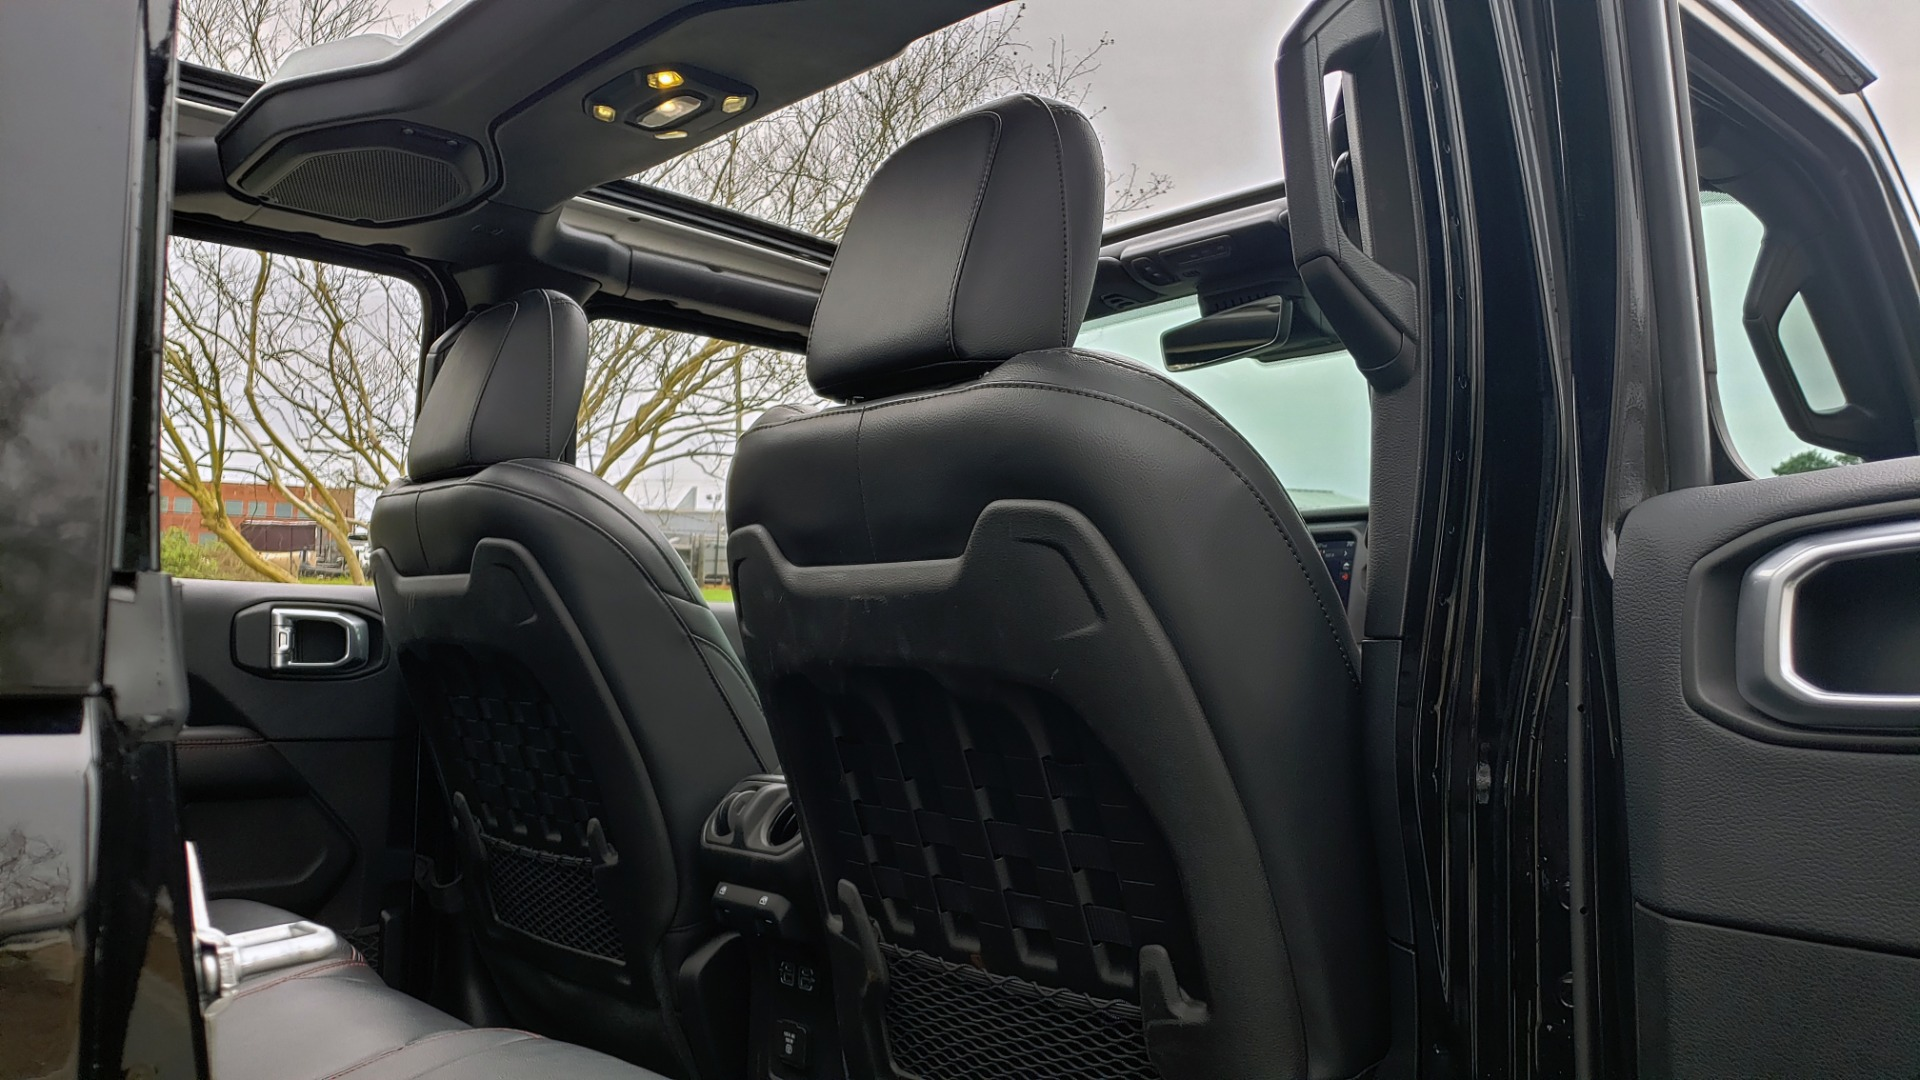 Used 2019 Jeep WRANGLER UNLIMITED RUBICON 4WD / V6 / 8-SPD AUTO / NAV / PWR TOP / REARVIEW for sale Sold at Formula Imports in Charlotte NC 28227 100